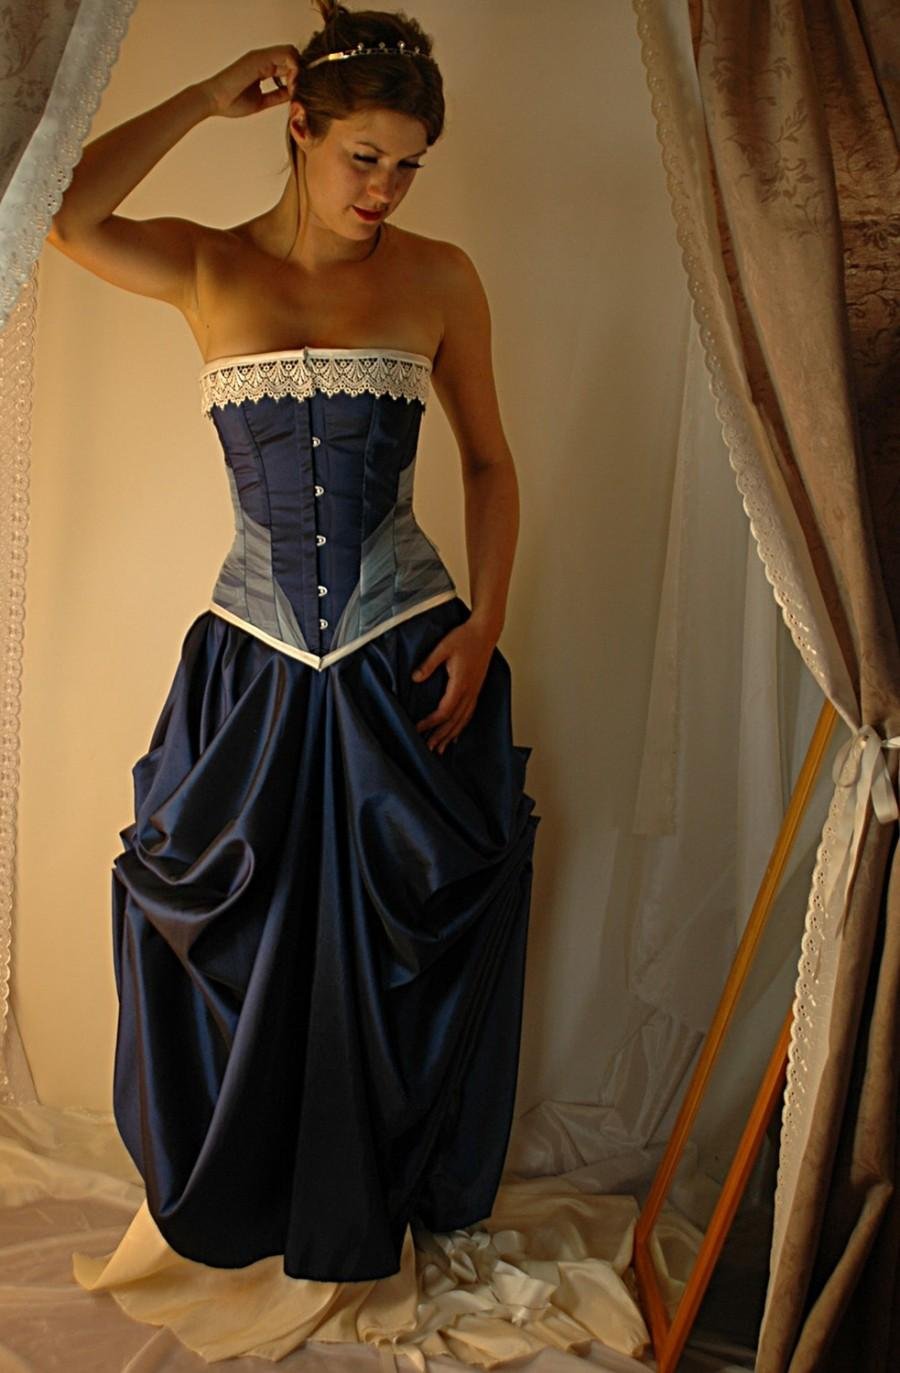 Hochzeit - Niniane - Custom made midnight blue and ivory steel boned corset gown